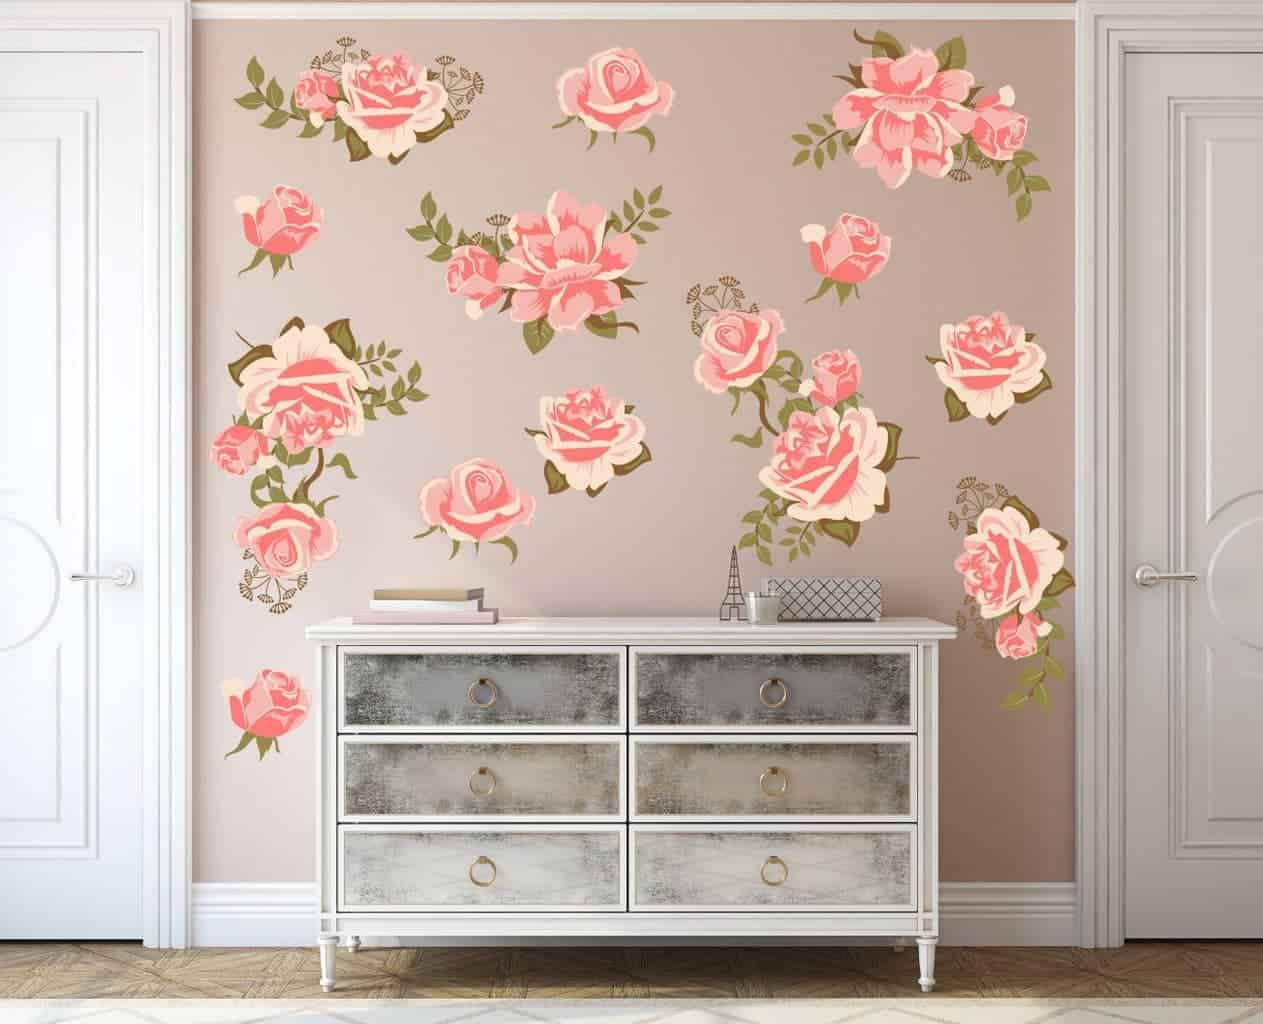 Pink Rose Flower Wall Decal Set, Pretty Pink Graphic Flower Wall Decal Set, wall decal, wall sticker, wall decals ireland, flower wall stickers,